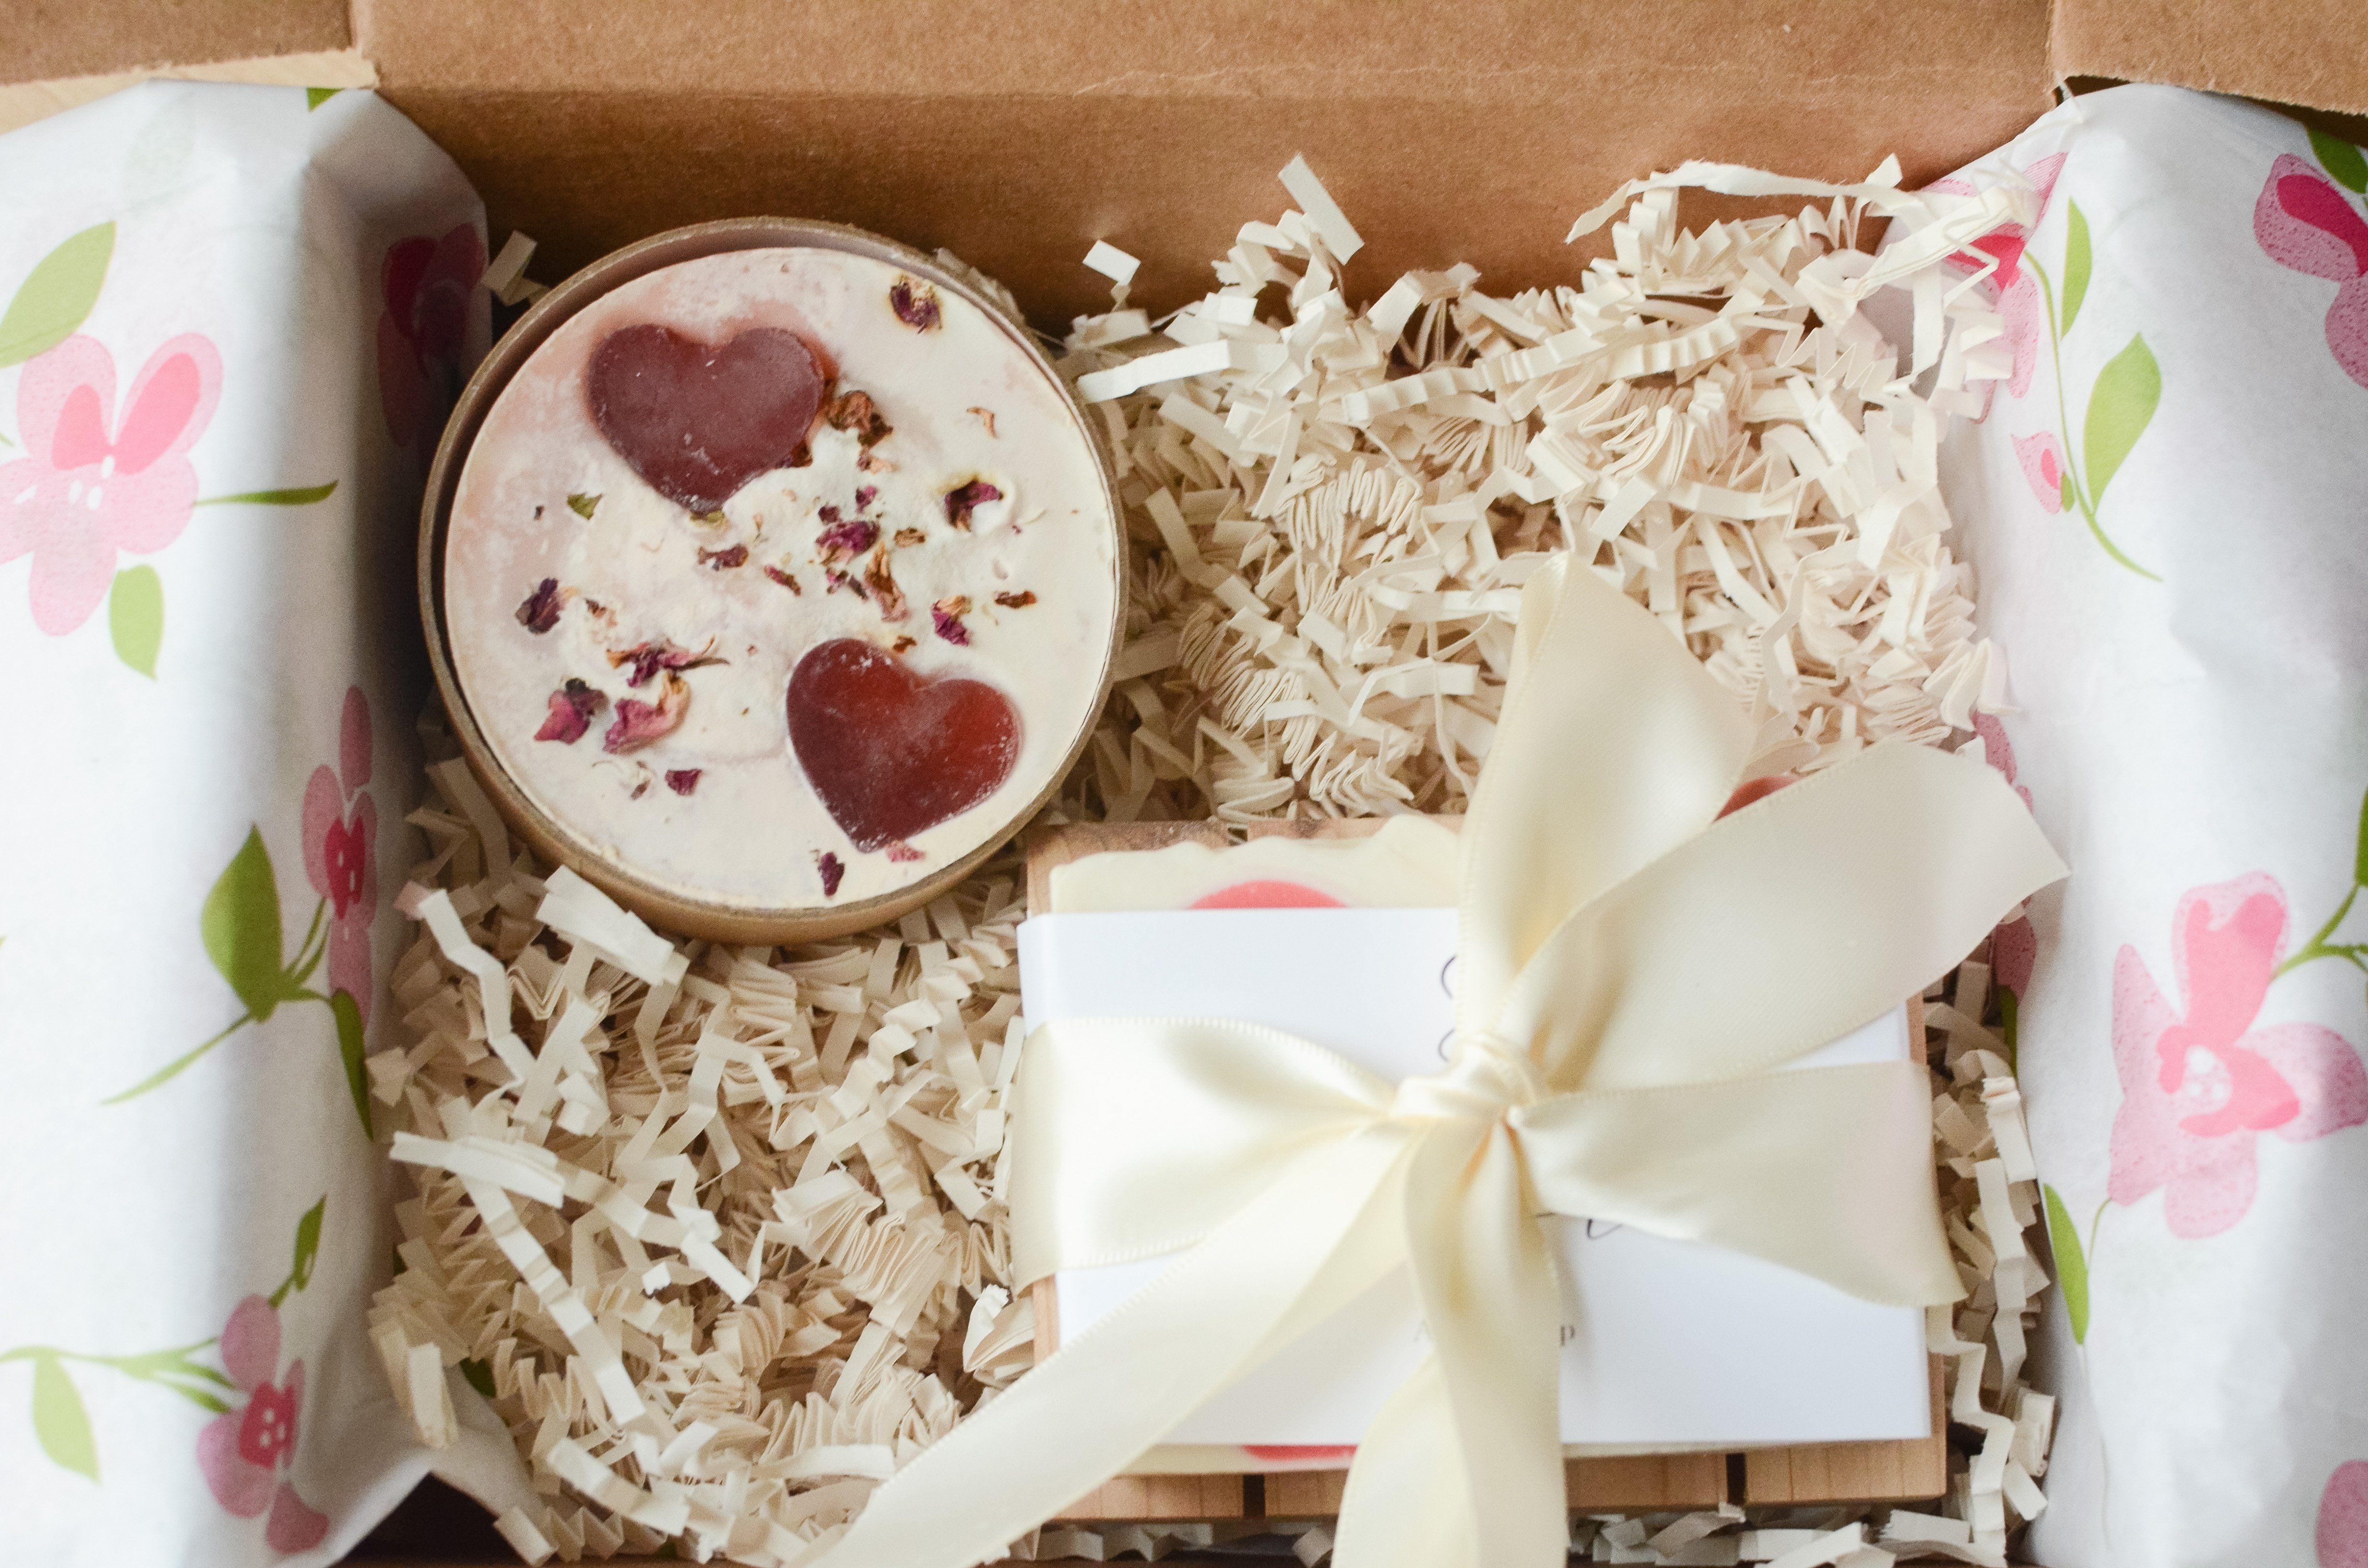 """Amore means love in Italian and is there a more perfect sentiment? These soaps are two Italian themed expressions of love. The first is """"Cuore"""" - which means """"heart"""" - it is an apple sage scented soap with two prominent hearts on a white background. It has the addition of Tussah silk for extra slip and luxury. The round soap is """"Tesoro"""" which means """"Treasure"""". This bar has shea butter and rose clay. It's scented with peony fragrance oil. It has glycerin soap heart embeds and red rose petals. It"""